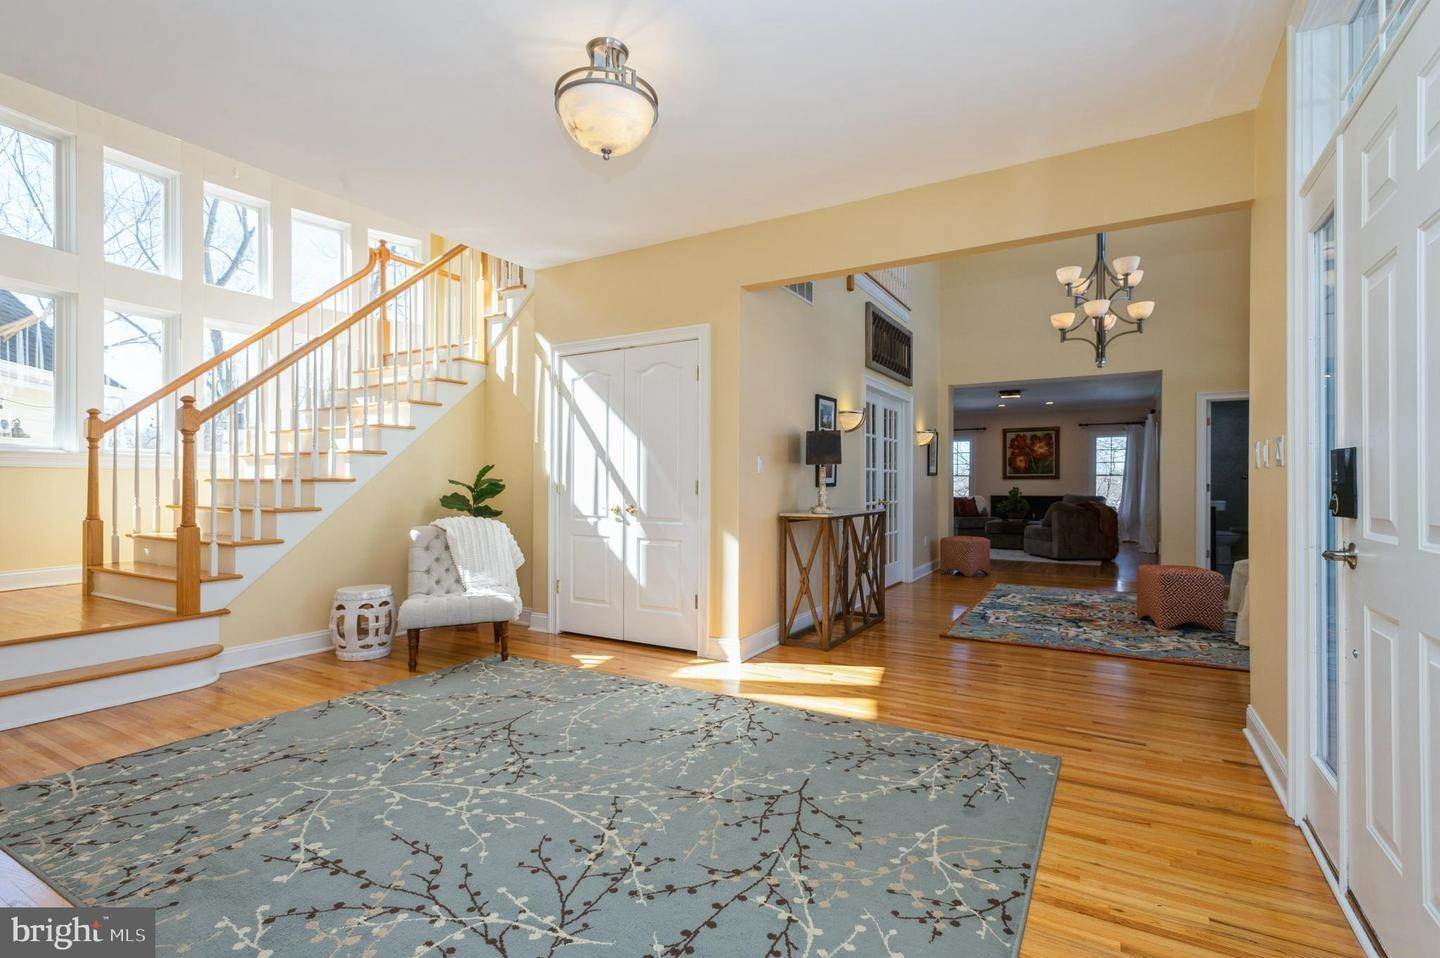 4. Detached House for Sale at 29 TODD RIDGE Road Titusville, New Jersey 08560 United States